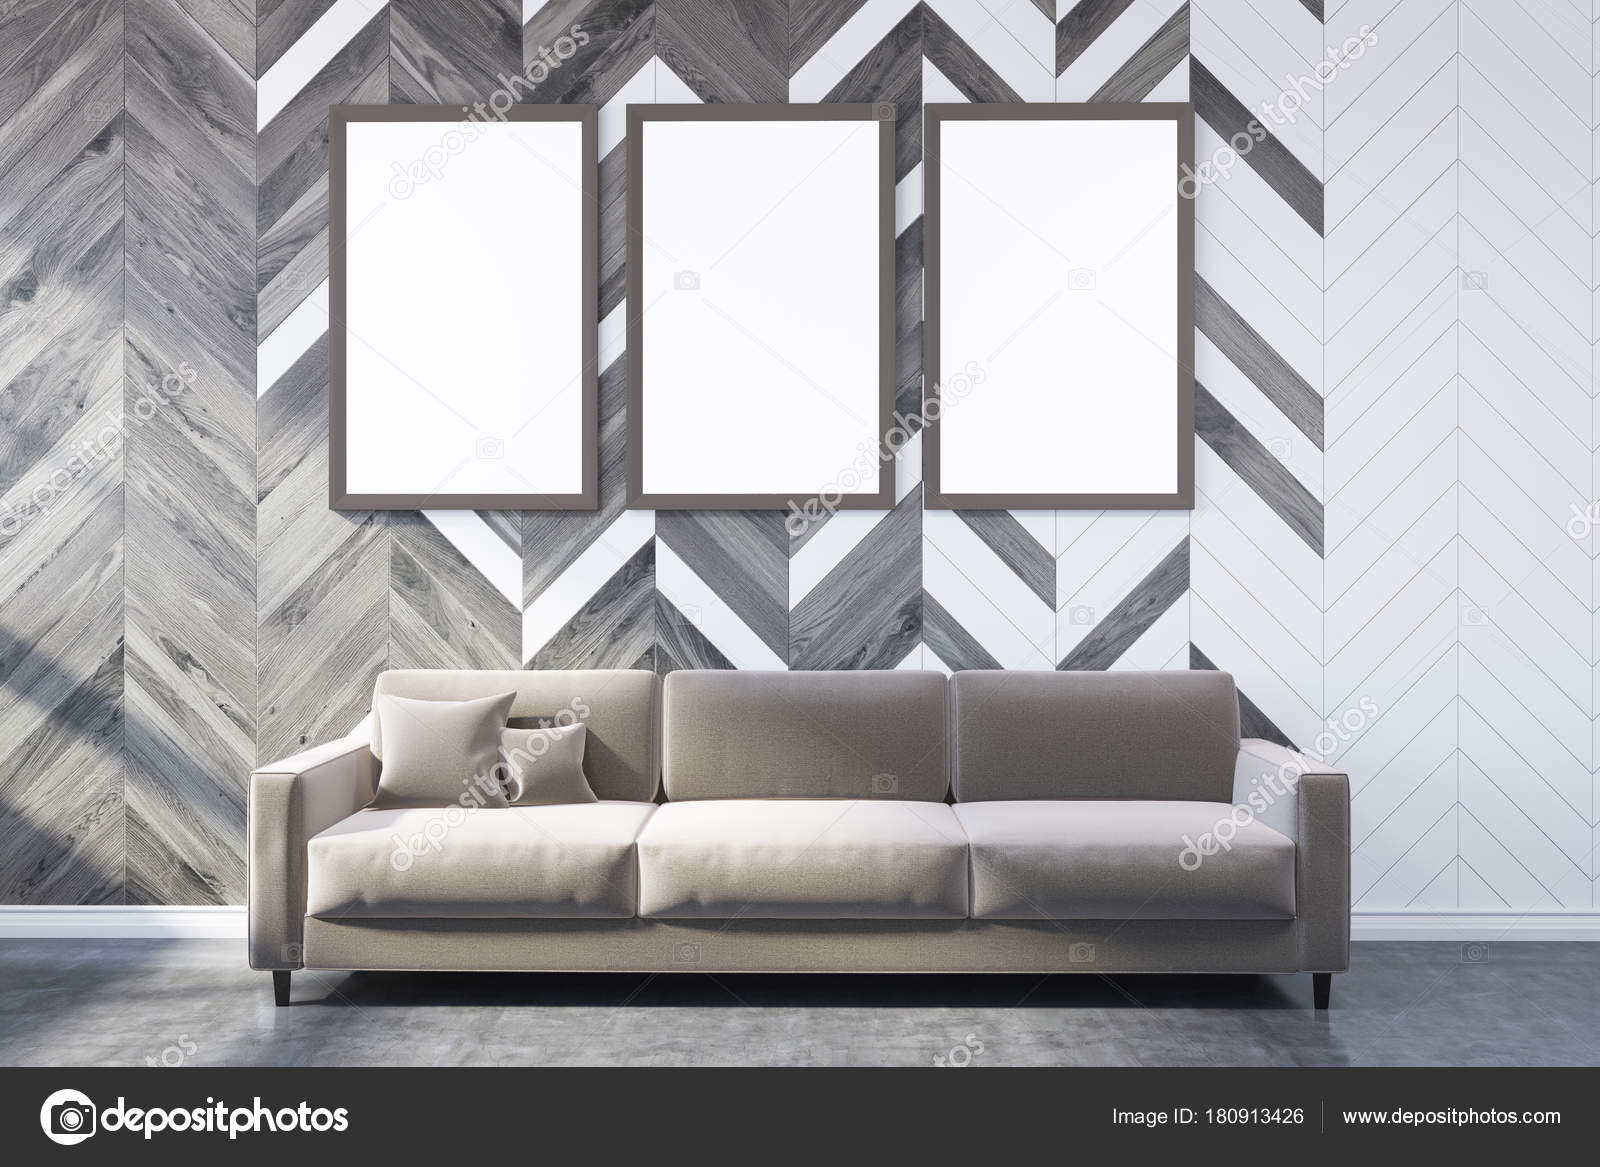 White and wooden living room, poster gallery, sofa — Stock Photo ...